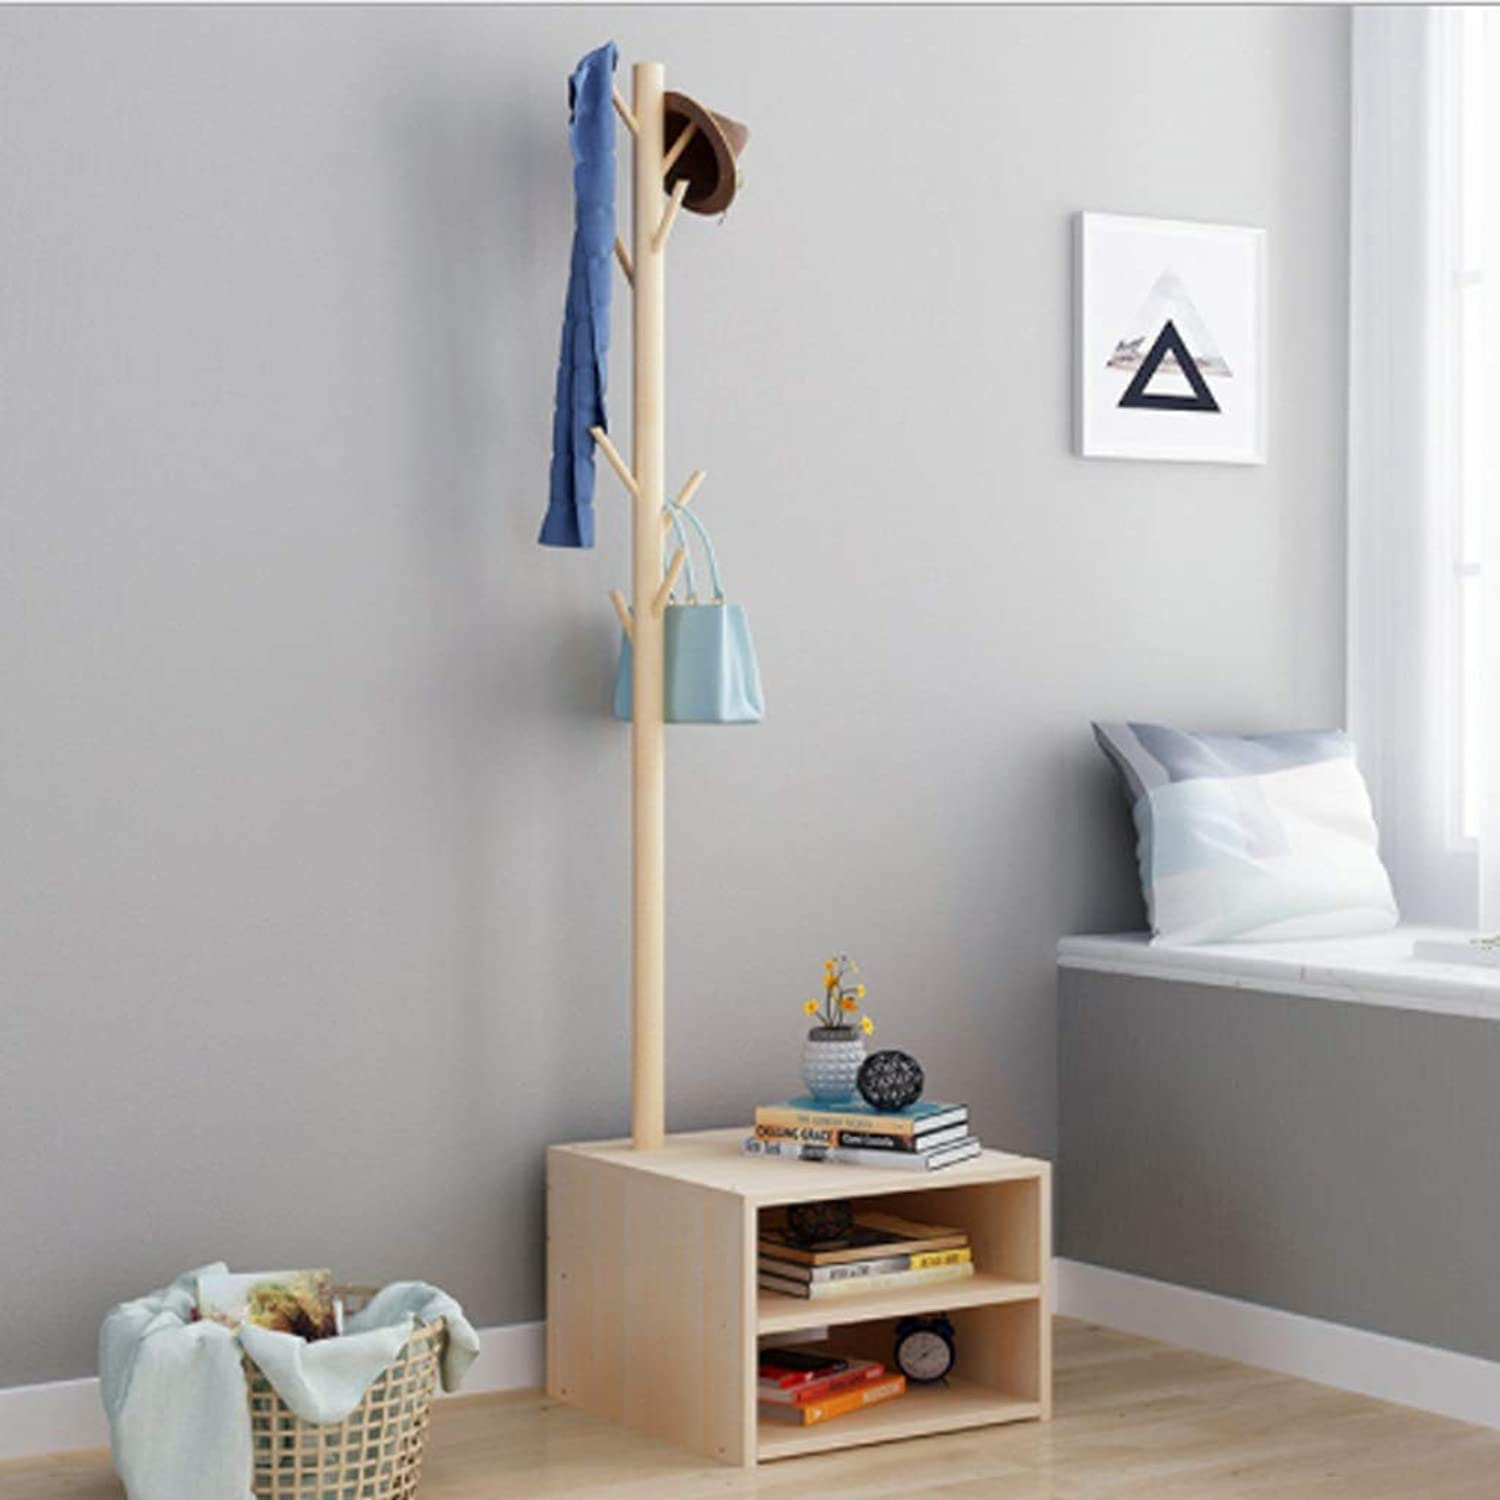 Coat rack hanger European coat rack bedroom hanger floor solid wood creative coat rack + cabinet for Garage Foyer Bedroom Office 170CM (H) (Size   C)